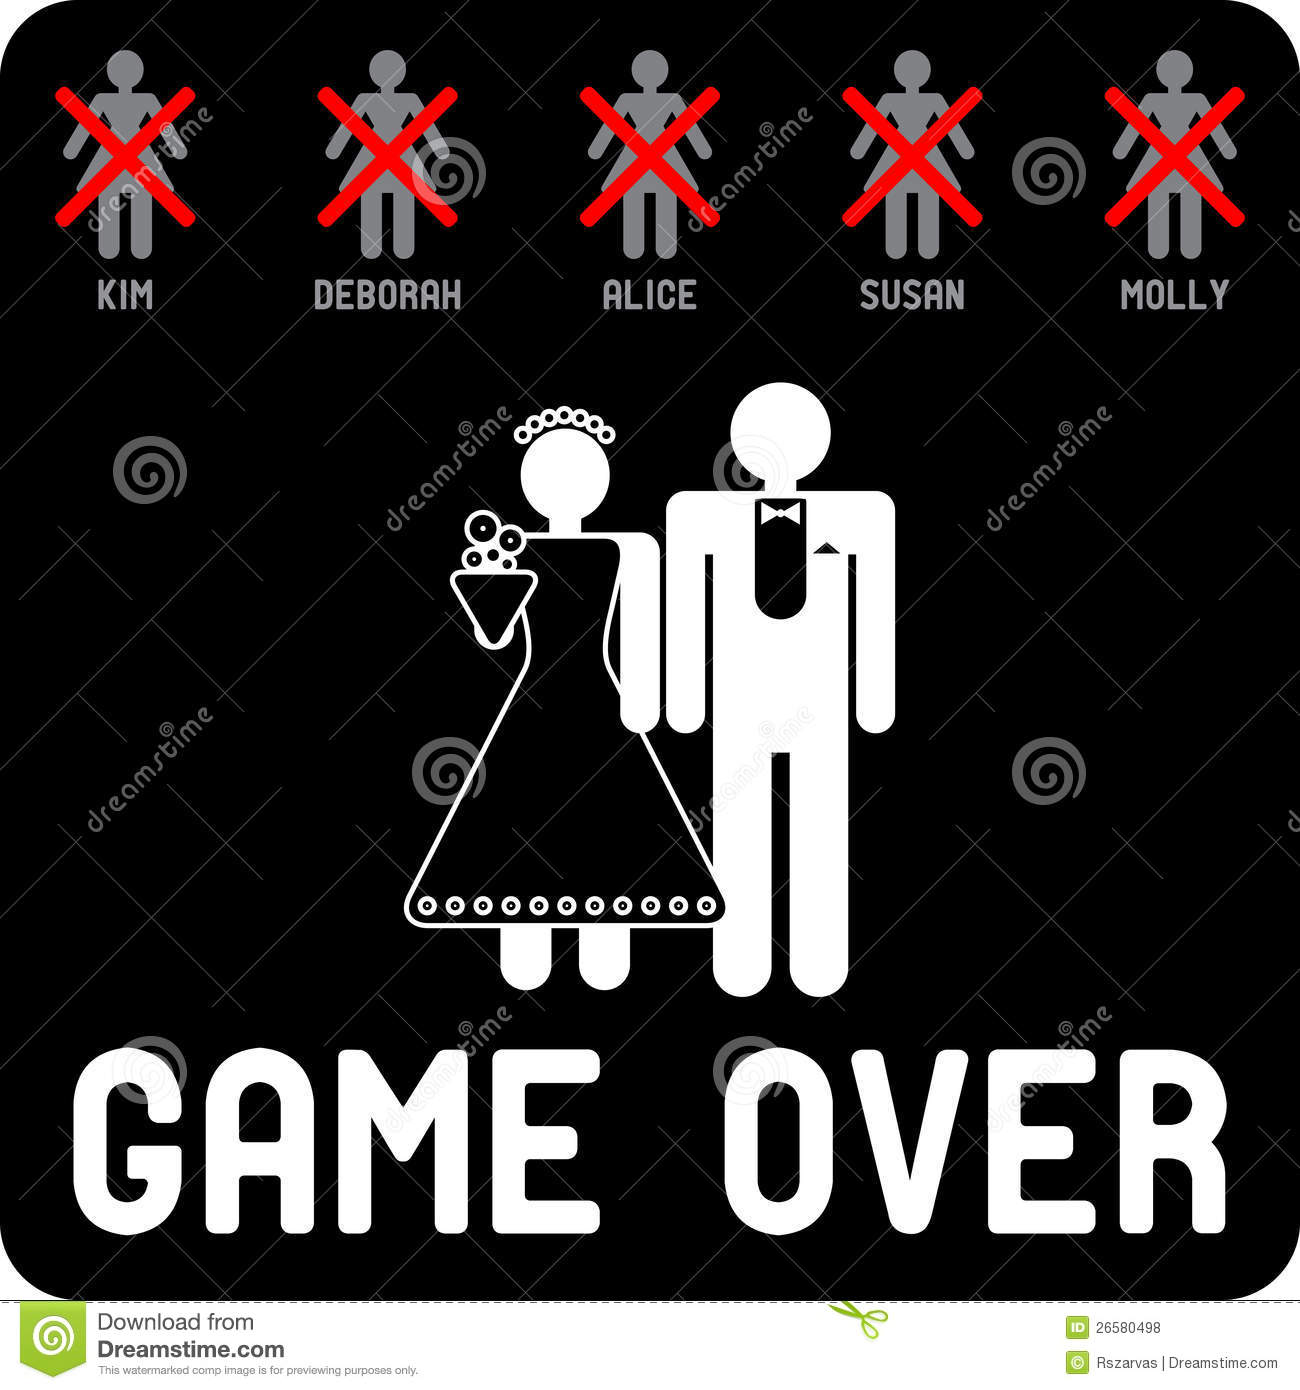 Game Over mariage